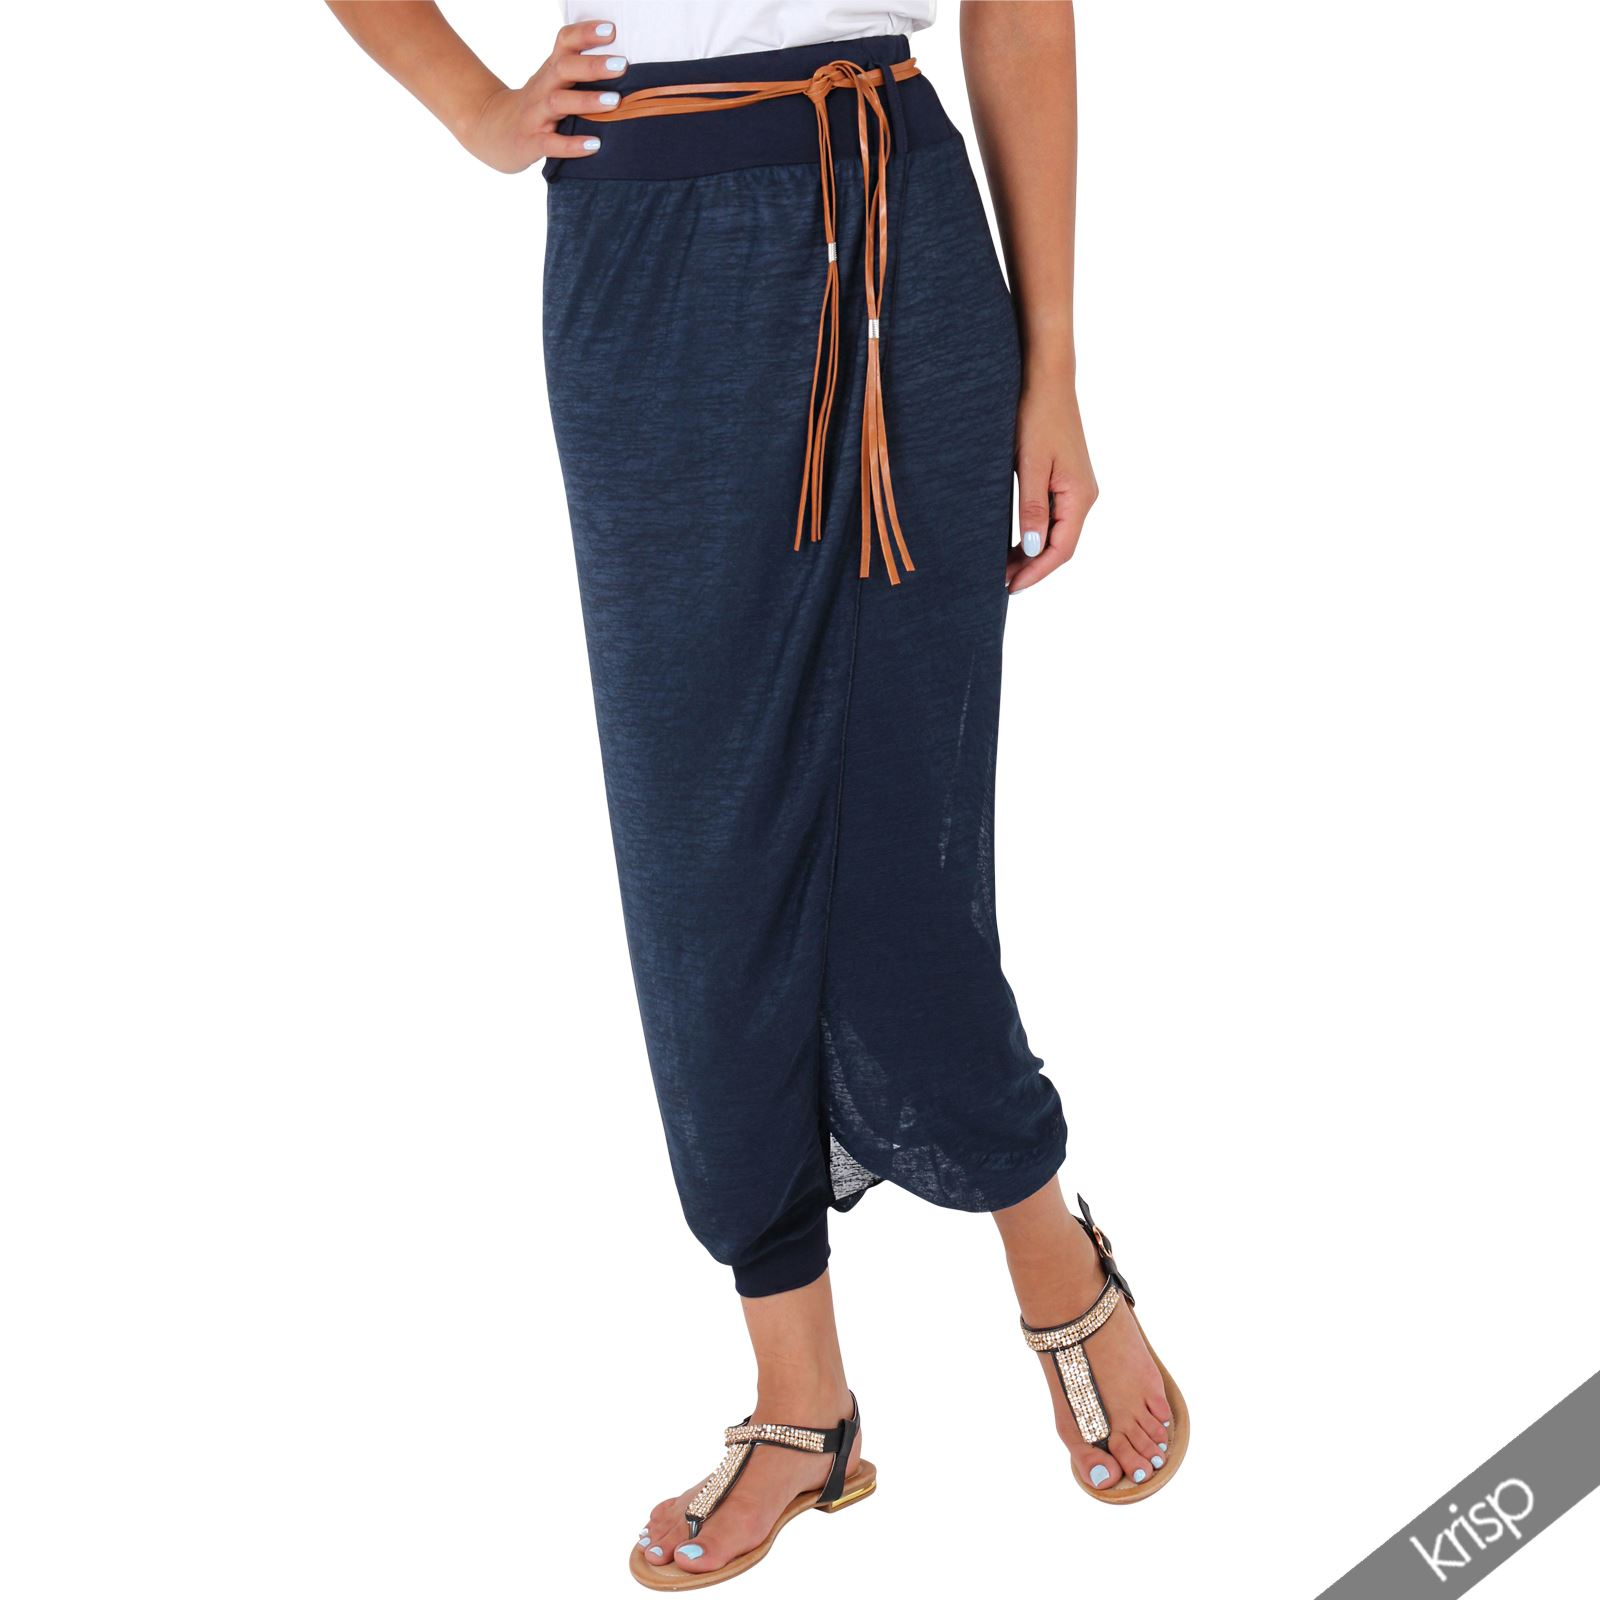 damen baggy pants sommerhose harem aladdin stil pluderhose hosenrock yoga ebay. Black Bedroom Furniture Sets. Home Design Ideas